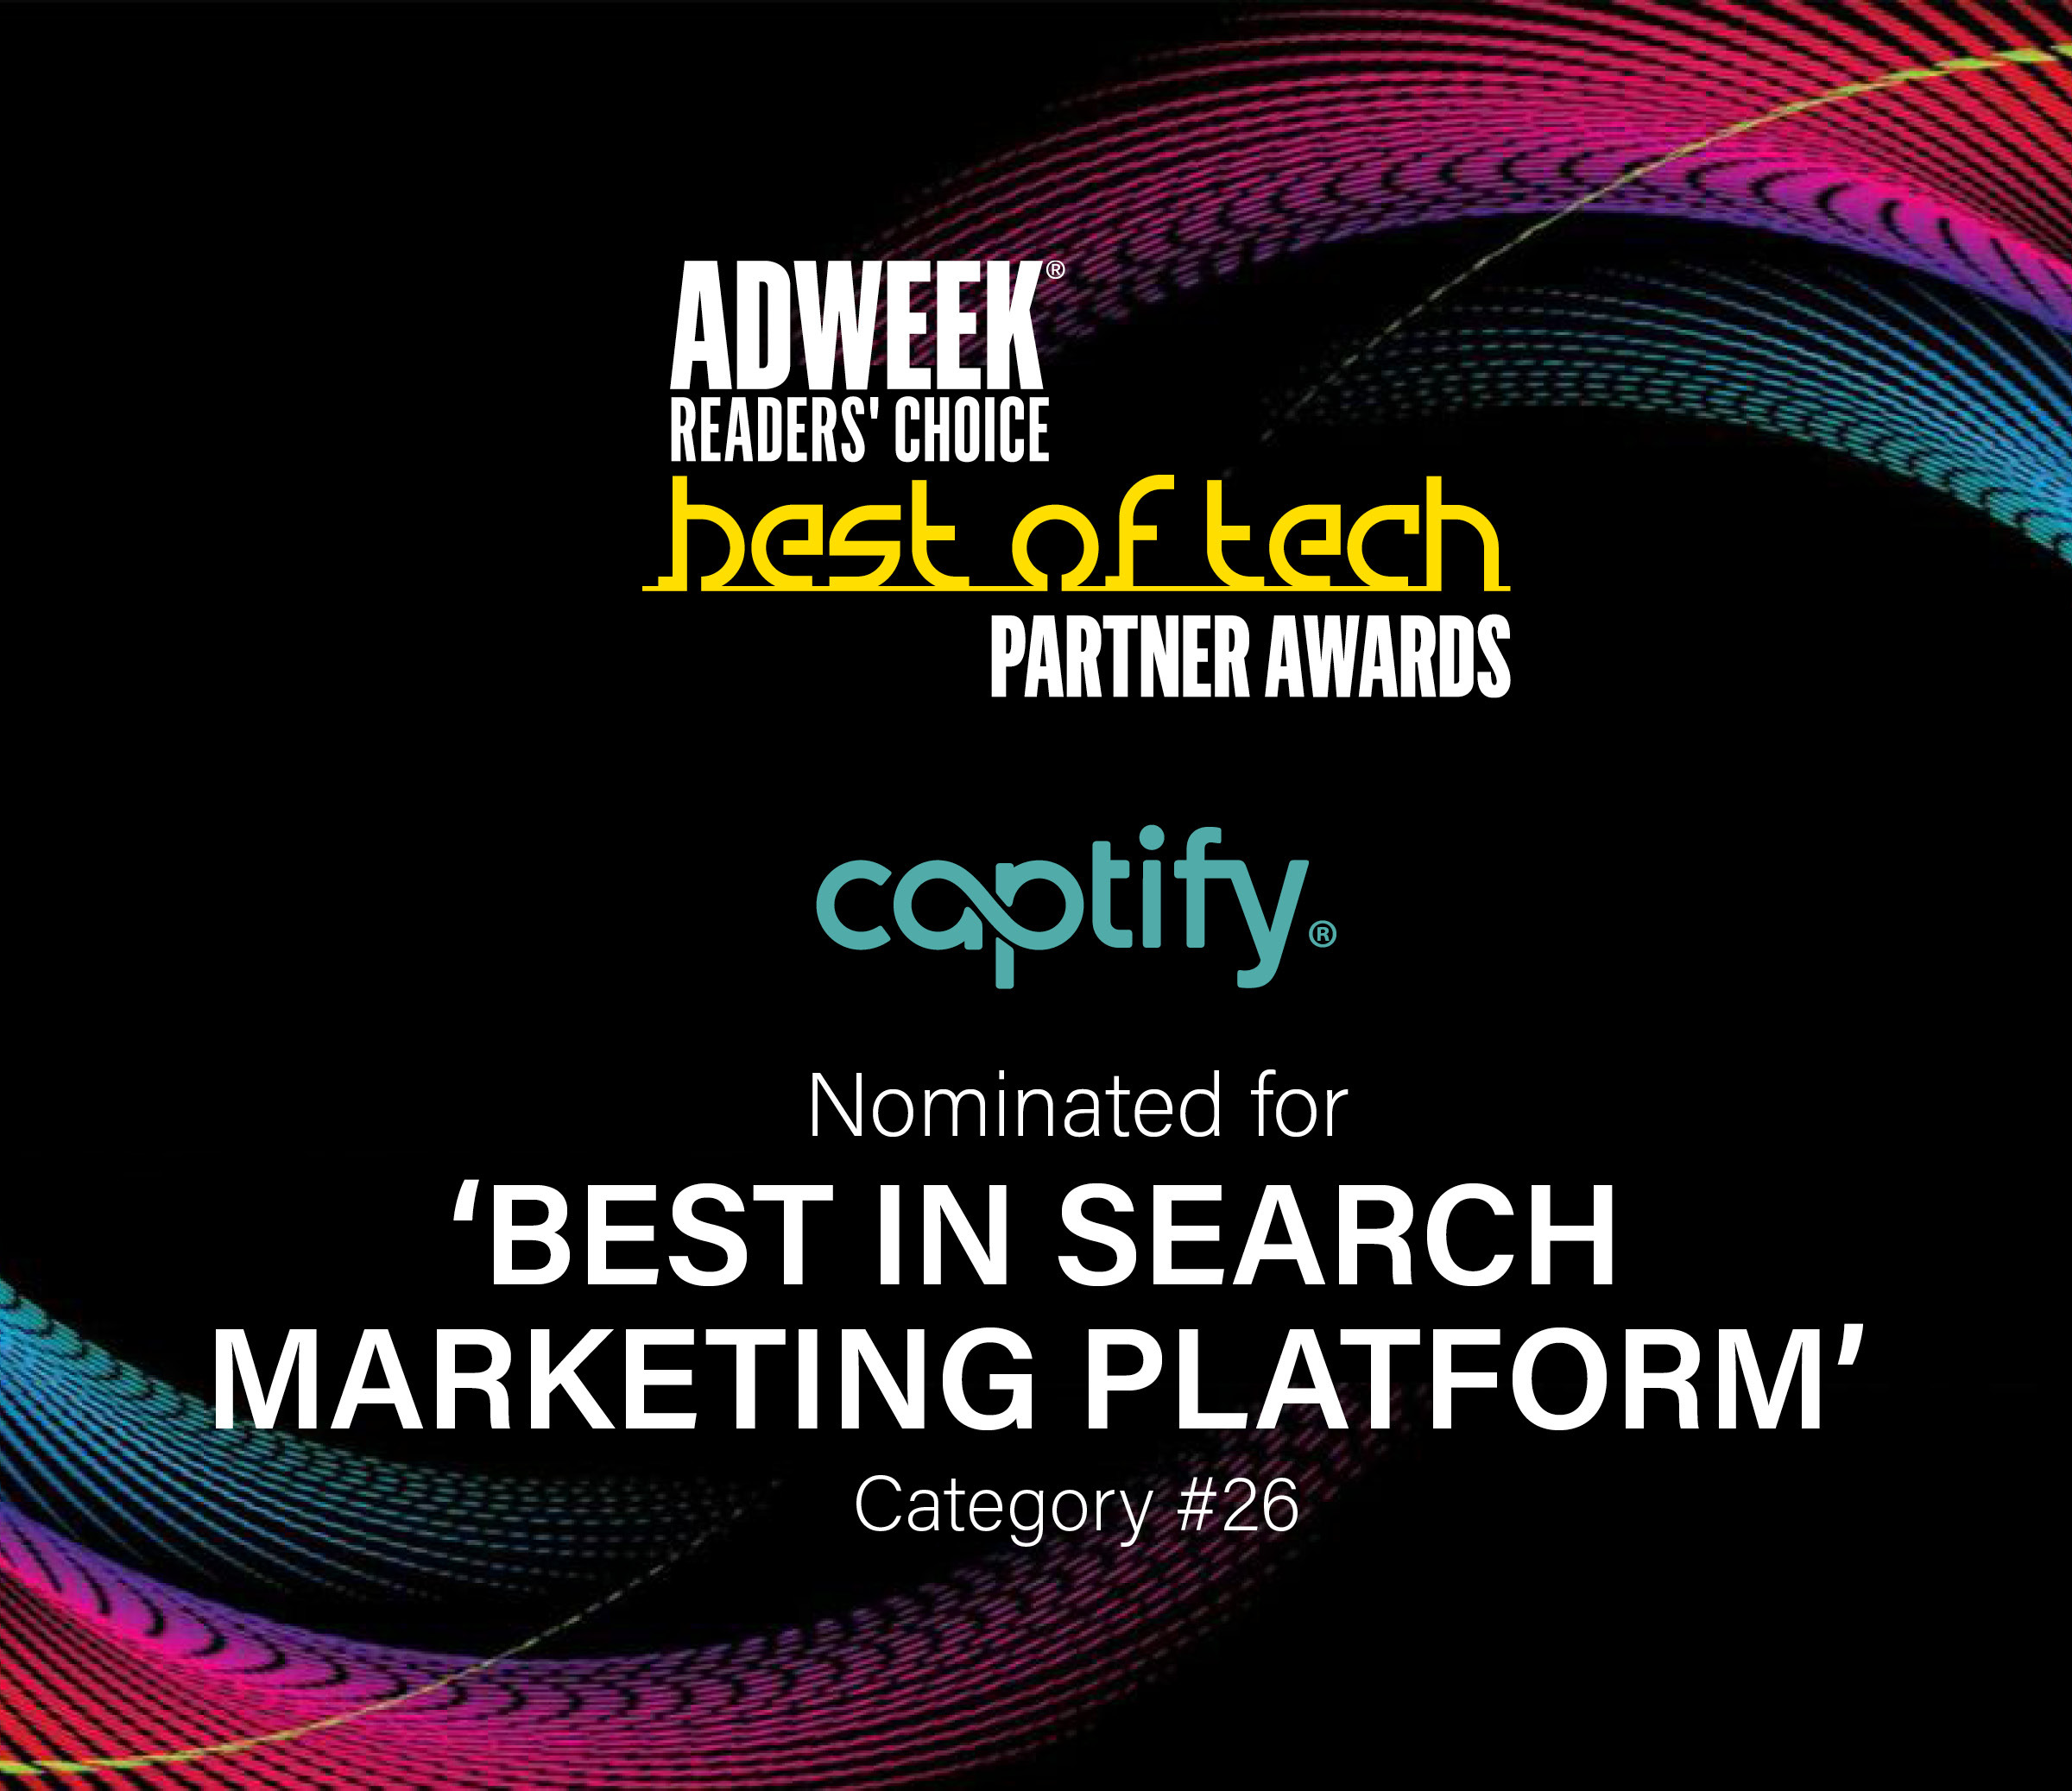 Captify Nominated At Adweek's Best Of Tech Partner Awards